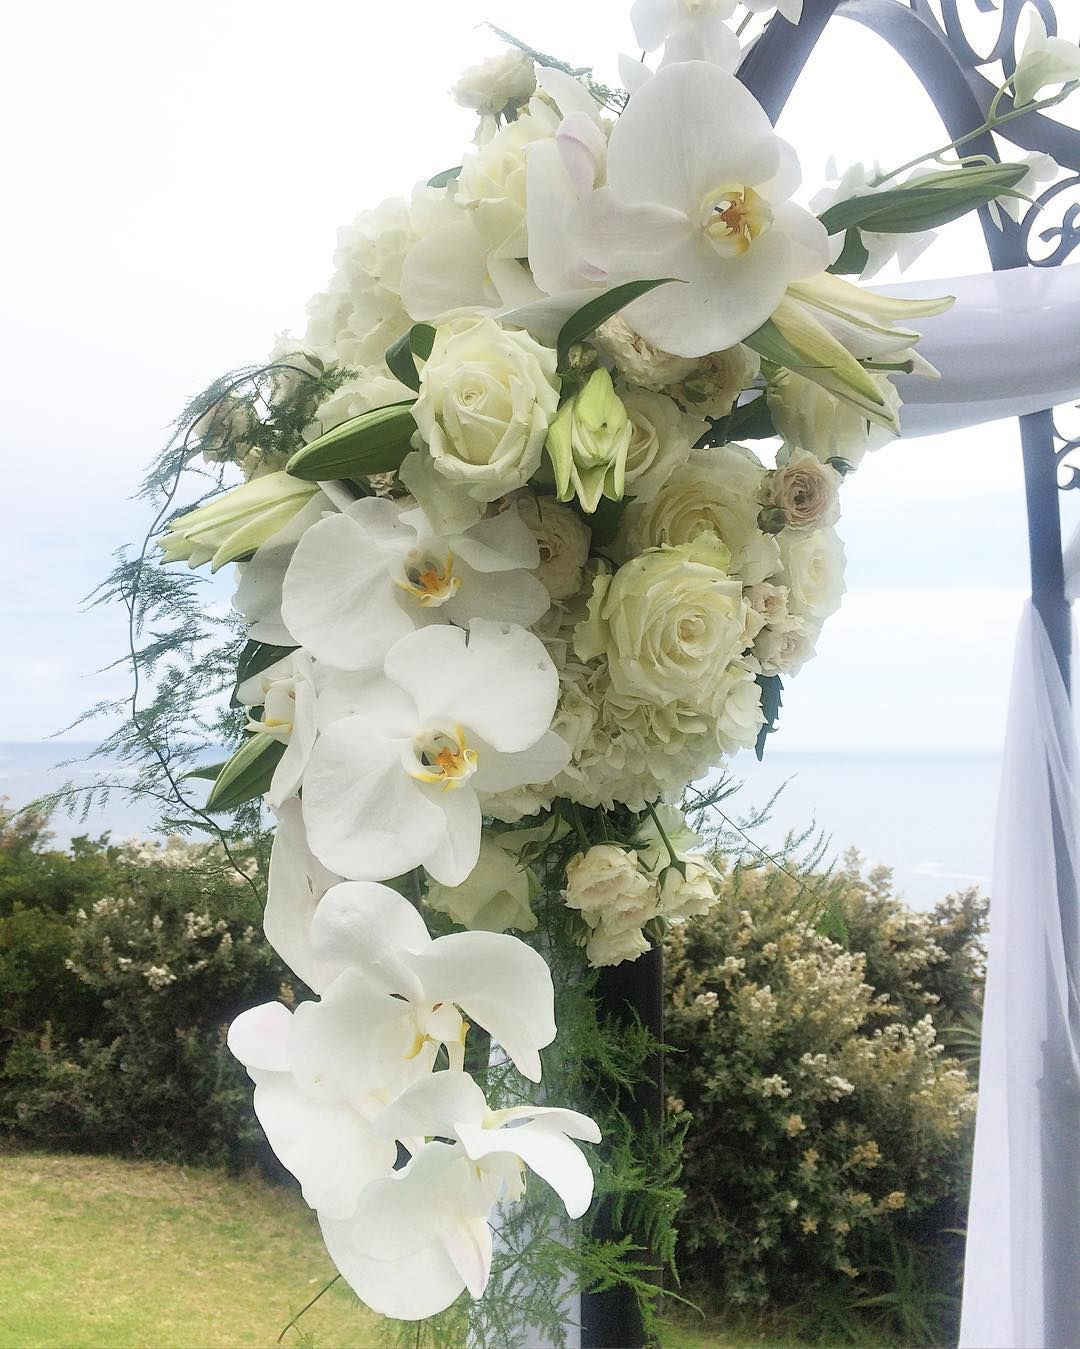 Lovely #flowers for today's #wedding #arch at #12apostles #themosaicweddingcompany #weddingday #weddingplanner #capetown #orchids #hydrangeas by mosaicweddings http://ift.tt/1ijk11S